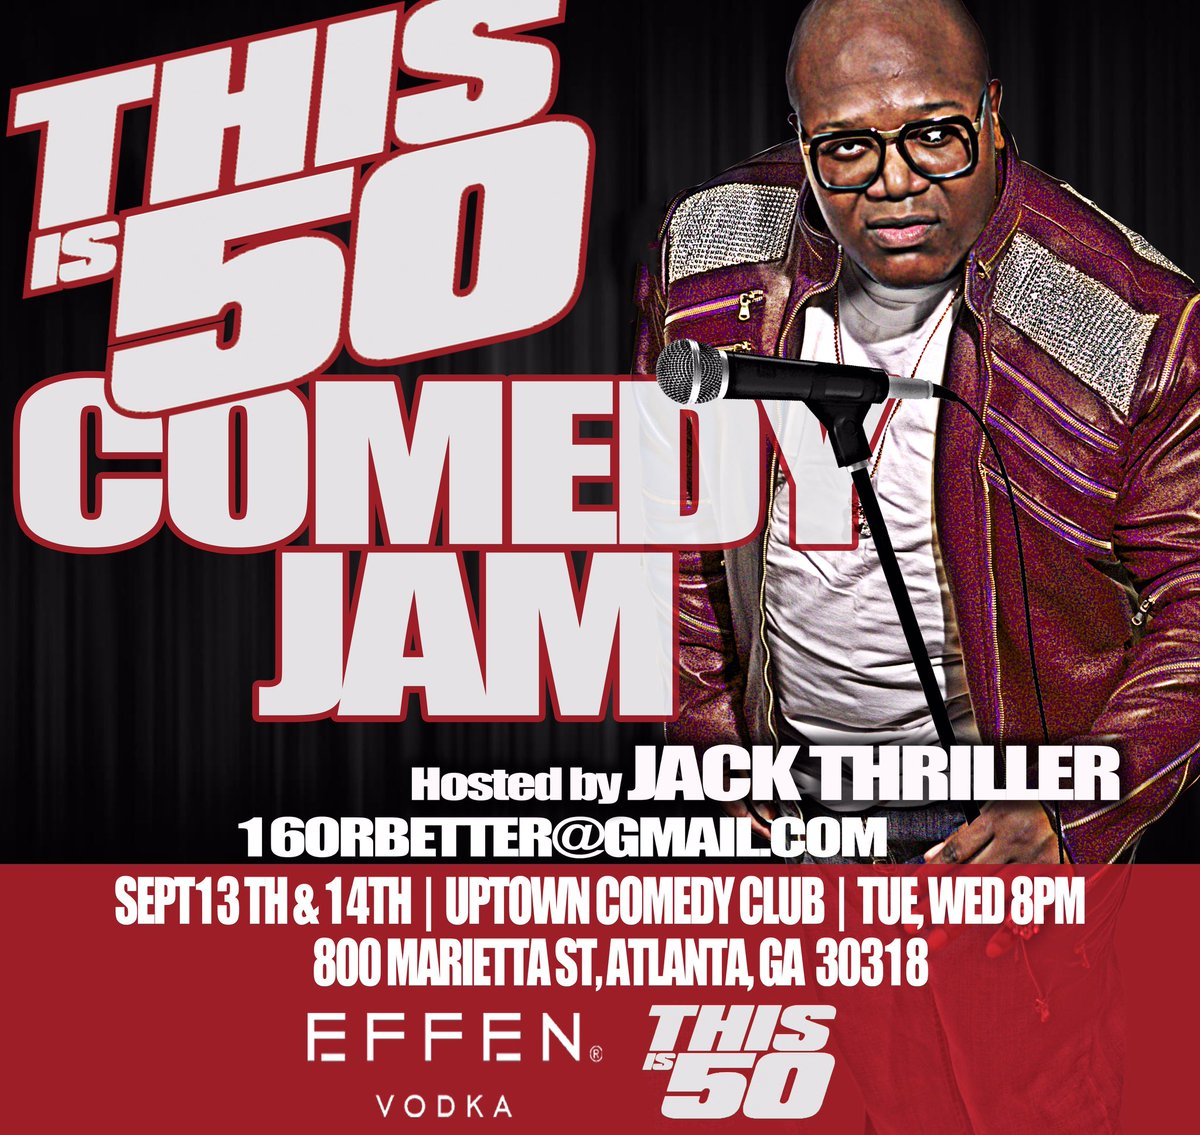 RT @thisis50: ATLANTA ???? tonight we at it! Come have a good laugh ???????? https://t.co/3AIuYg2QOo